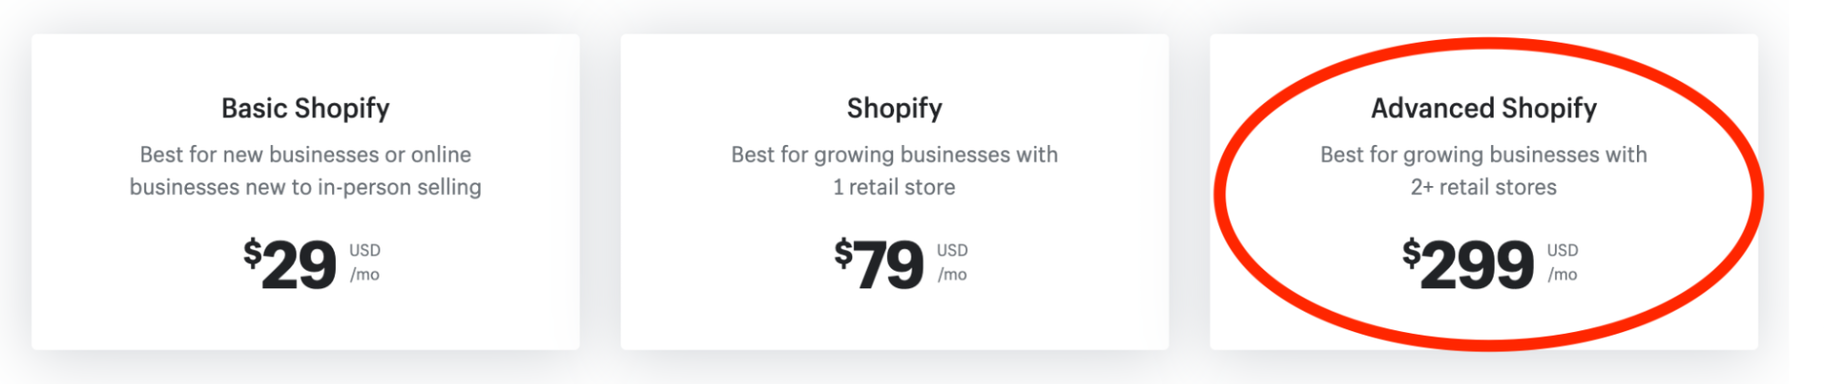 Shopify Advanced Pricing